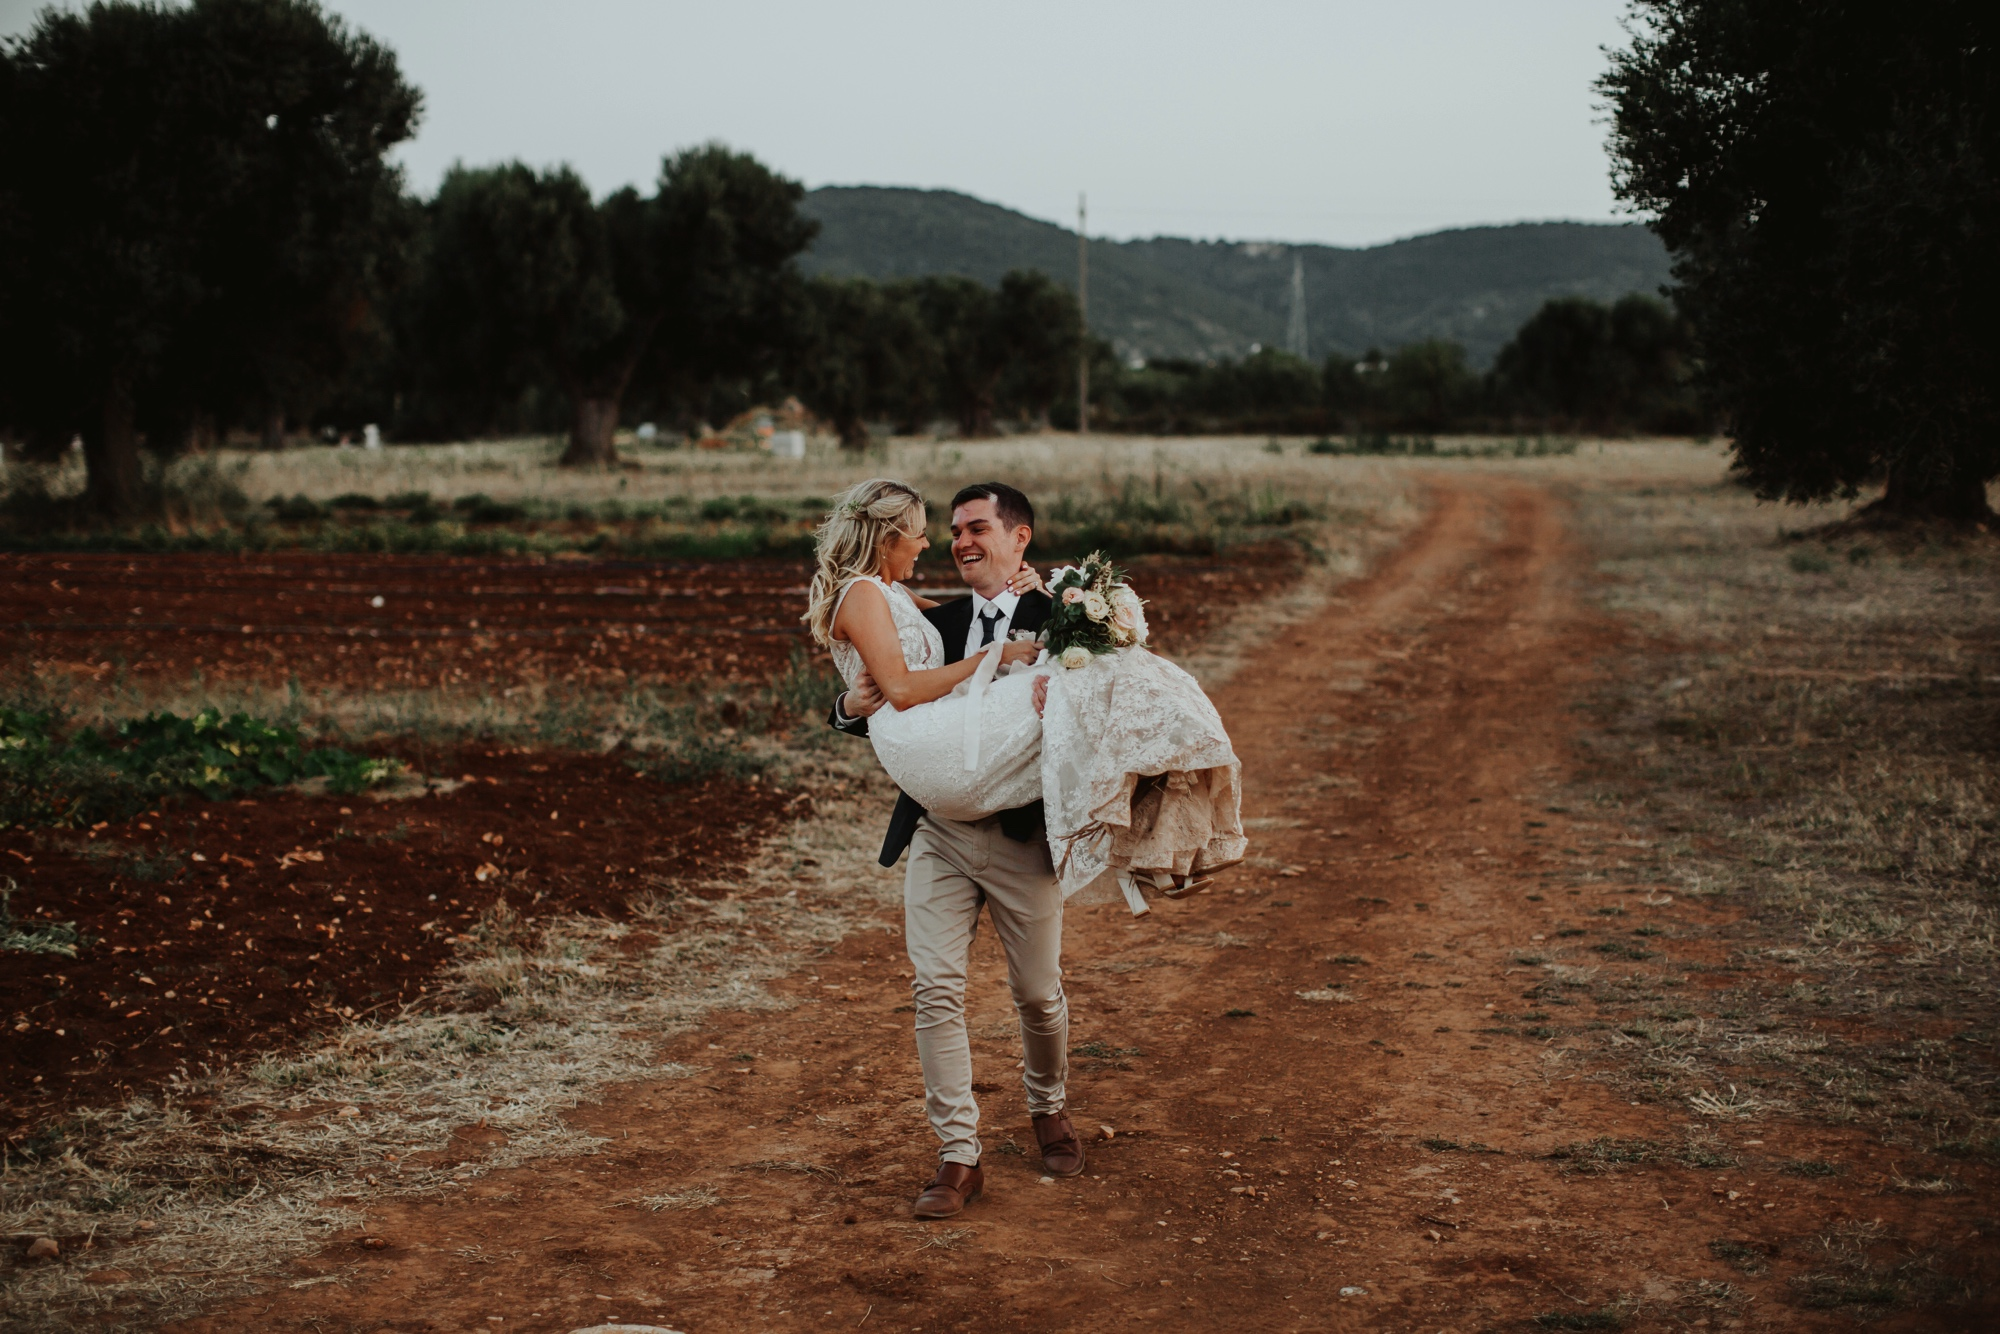 0000000067_Rob and Lucy-744_Weddings_Destination_Italy_got_Just_Engaged.jpg